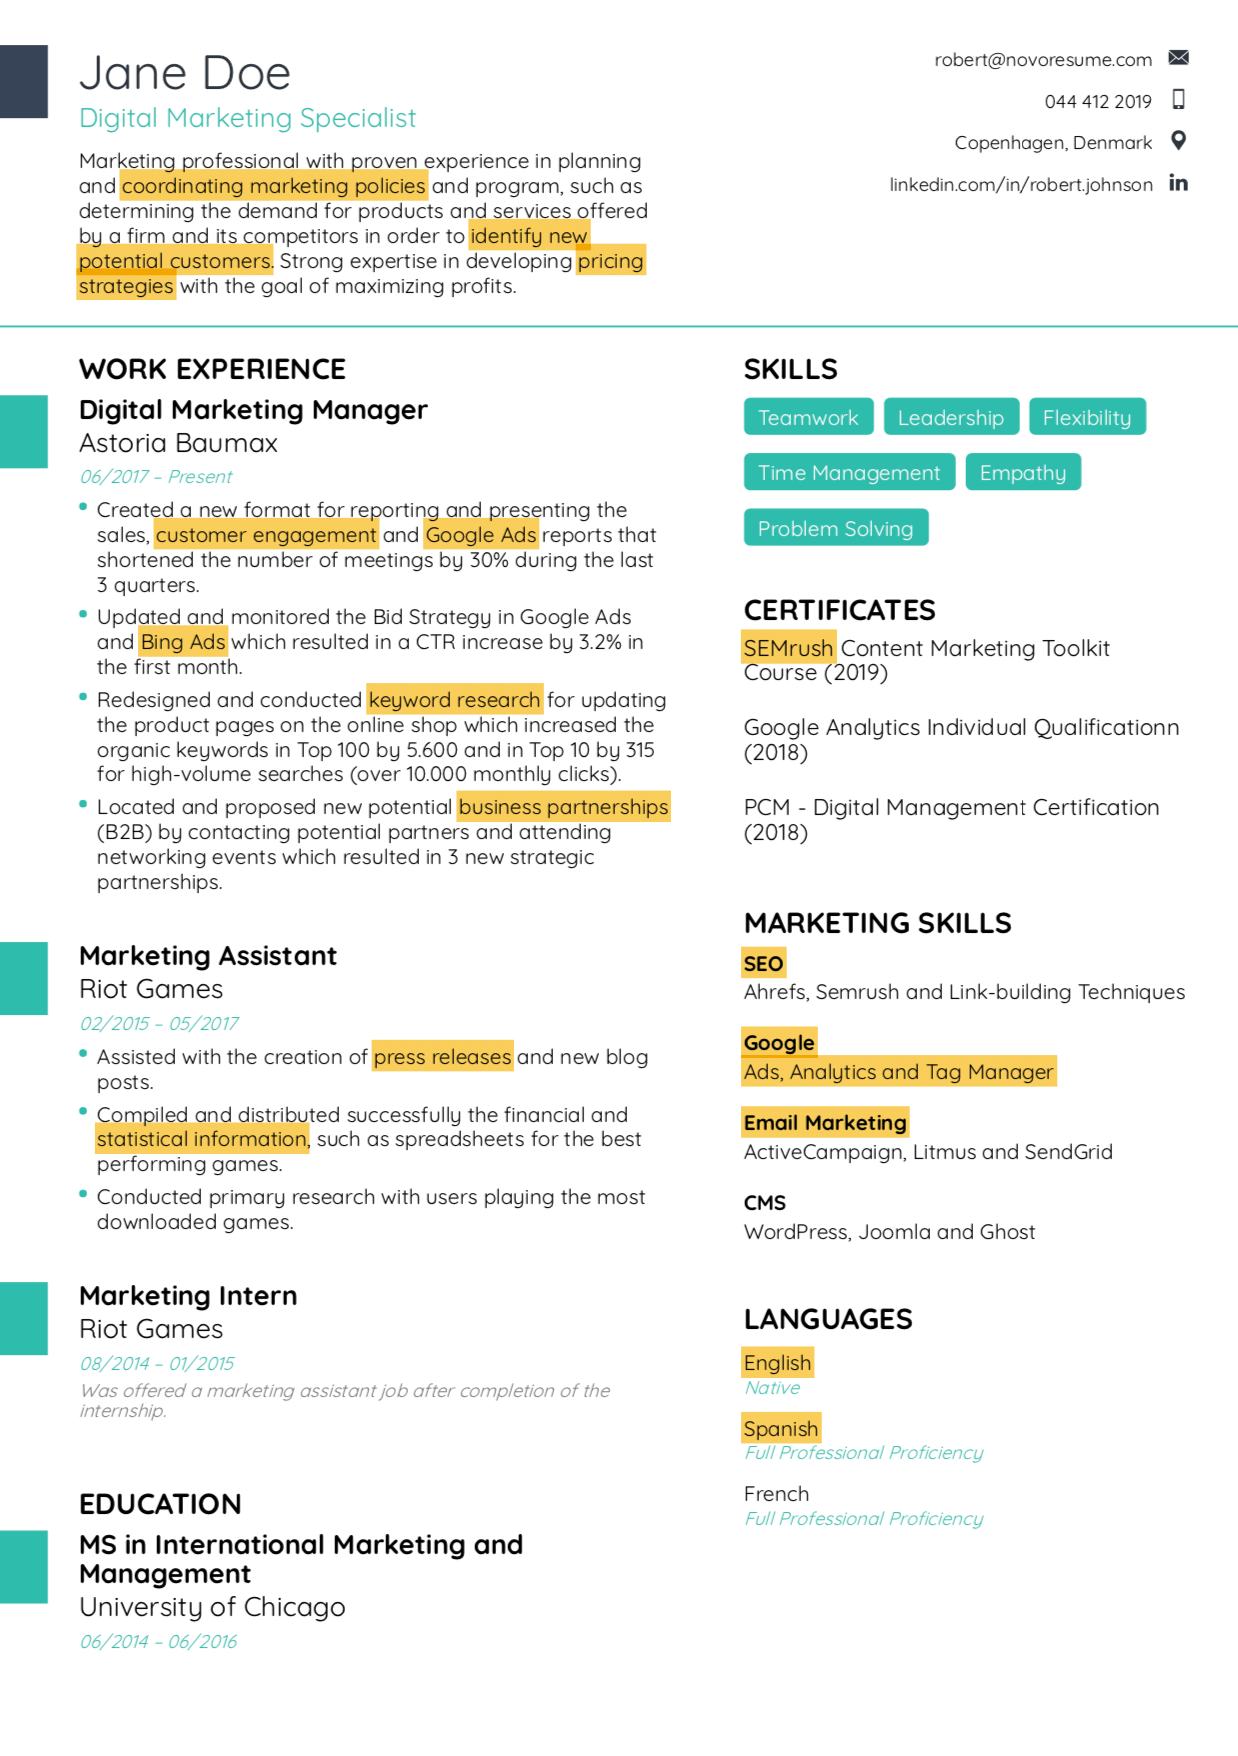 resume keywords example